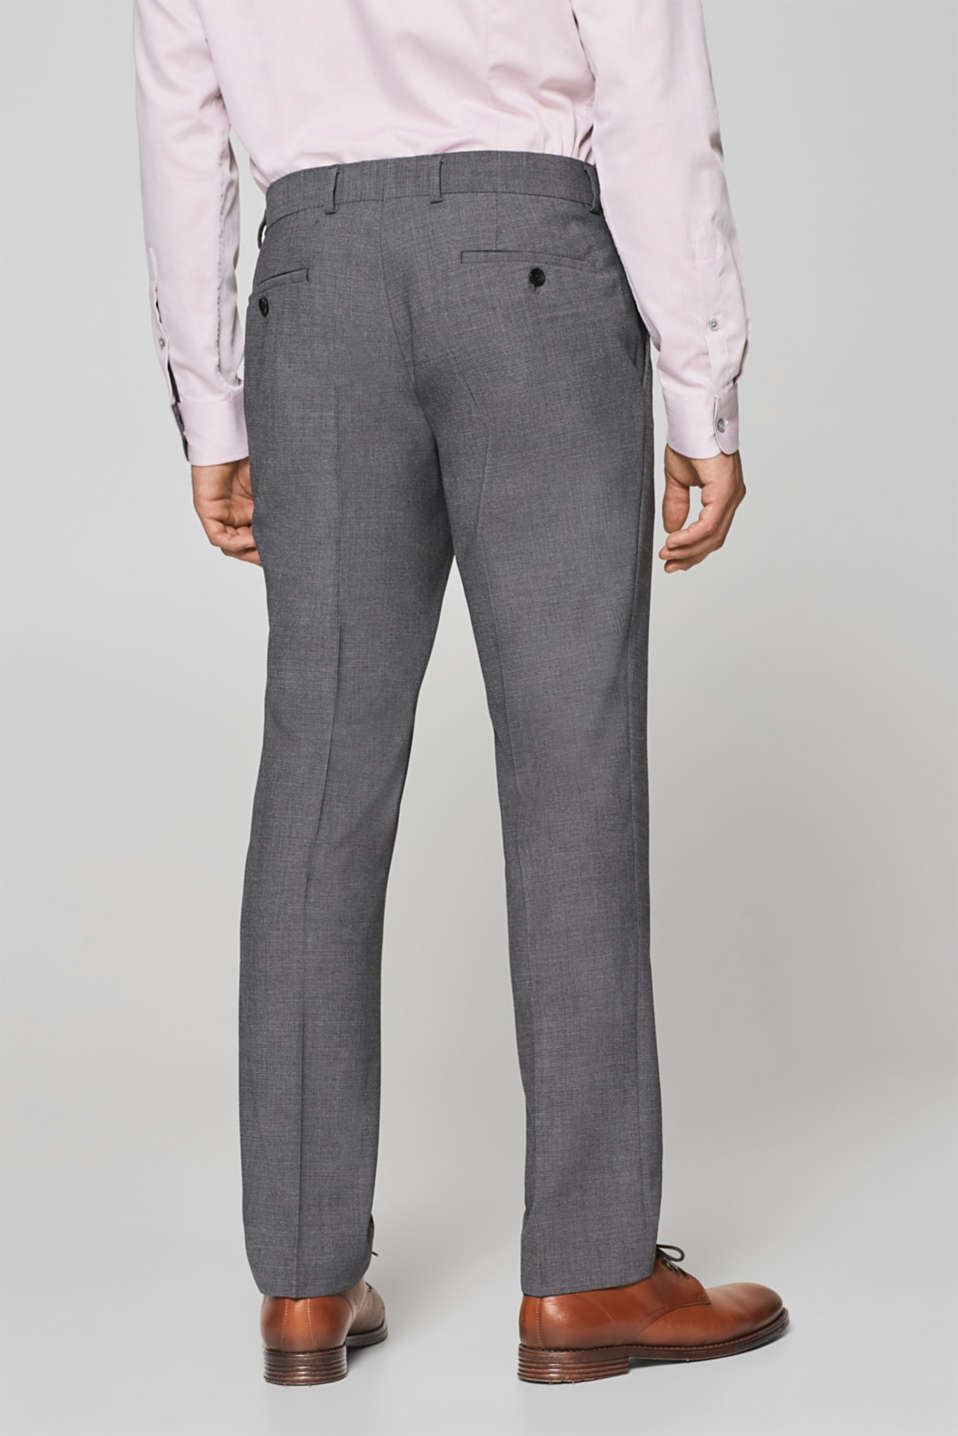 ACTIVE SUIT mix + match: Textured trousers